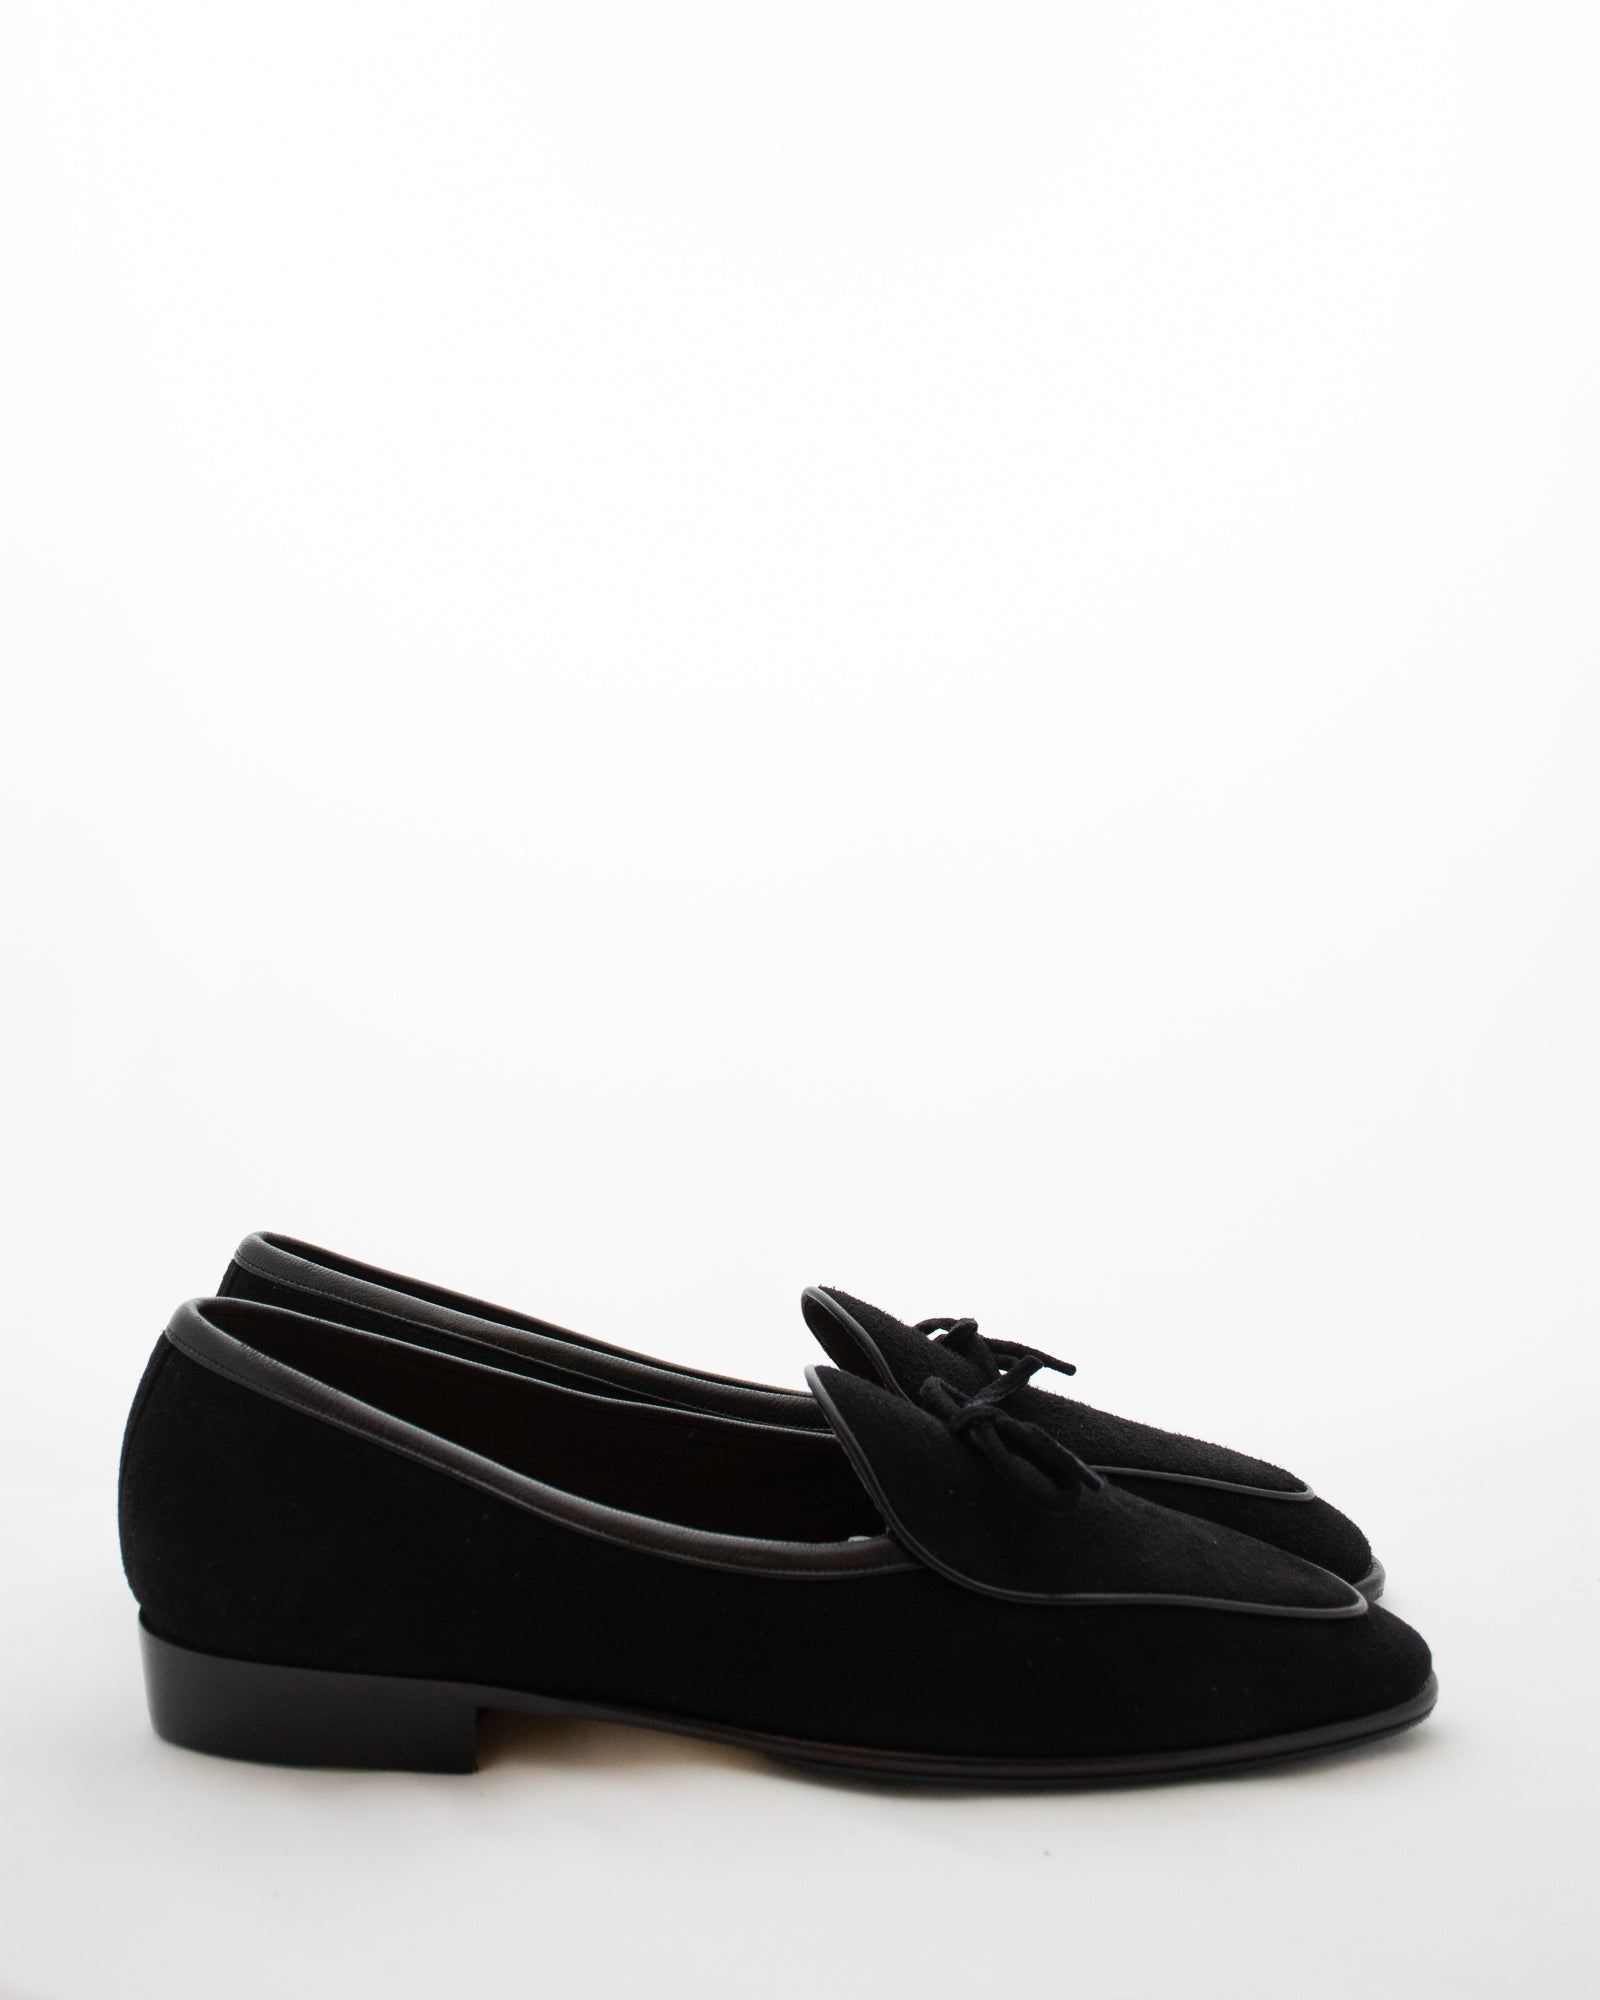 B&L Sagan String Loafer